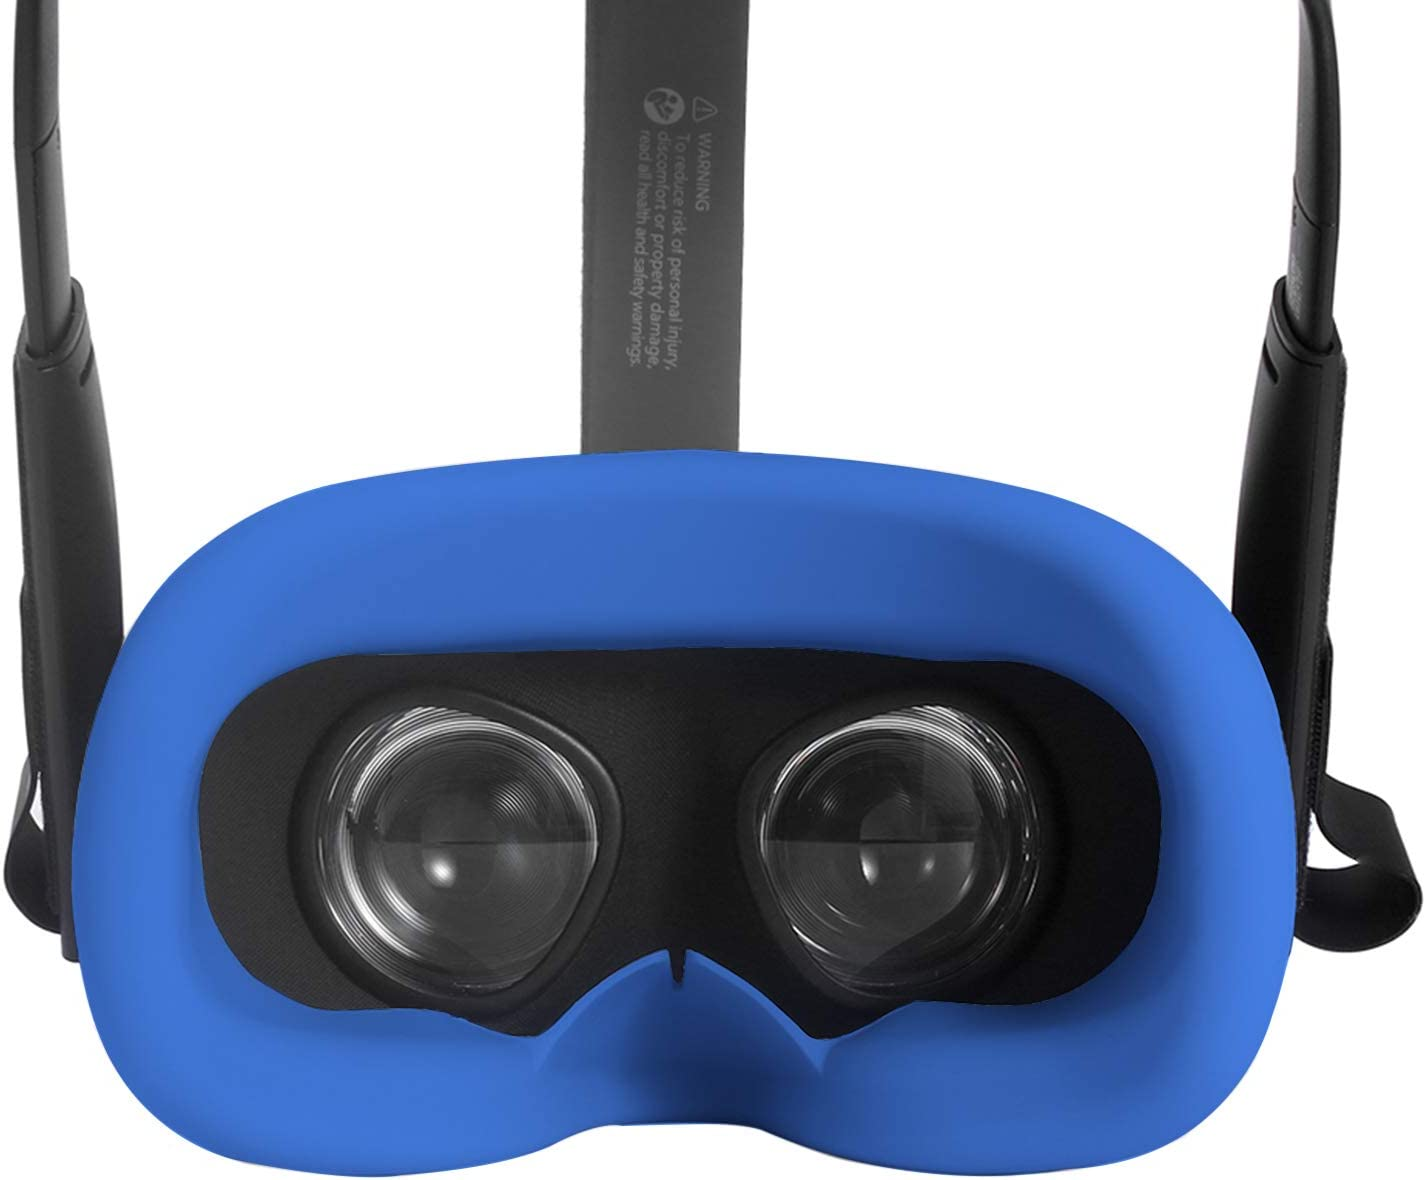 Fromsky Face Cover for Oculus Quest, Silicone Eye Mask Pad (Blue)